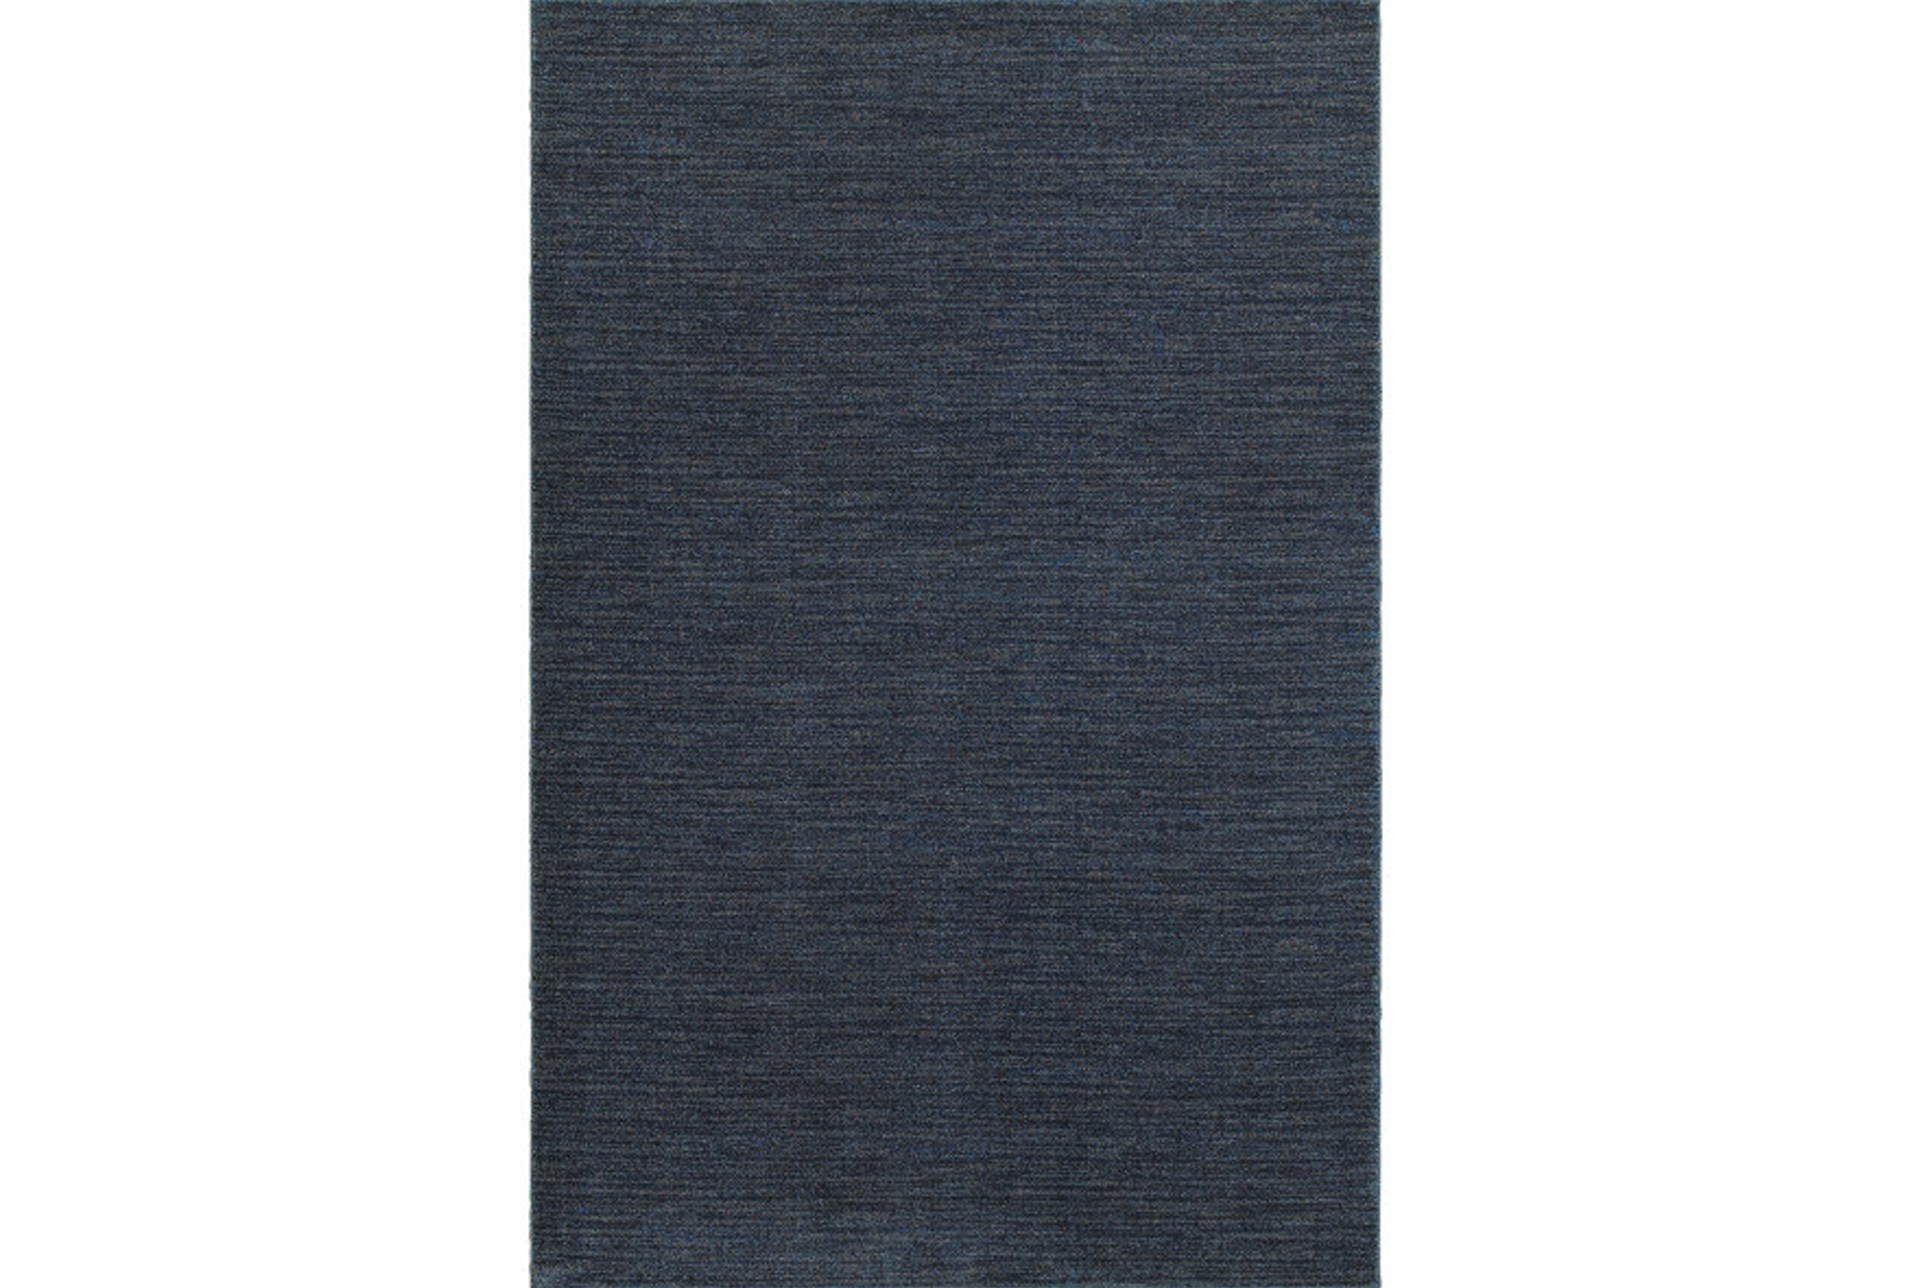 22x36 Rug Vista Navy Qty 1 Has Been Successfully Added To Your Cart